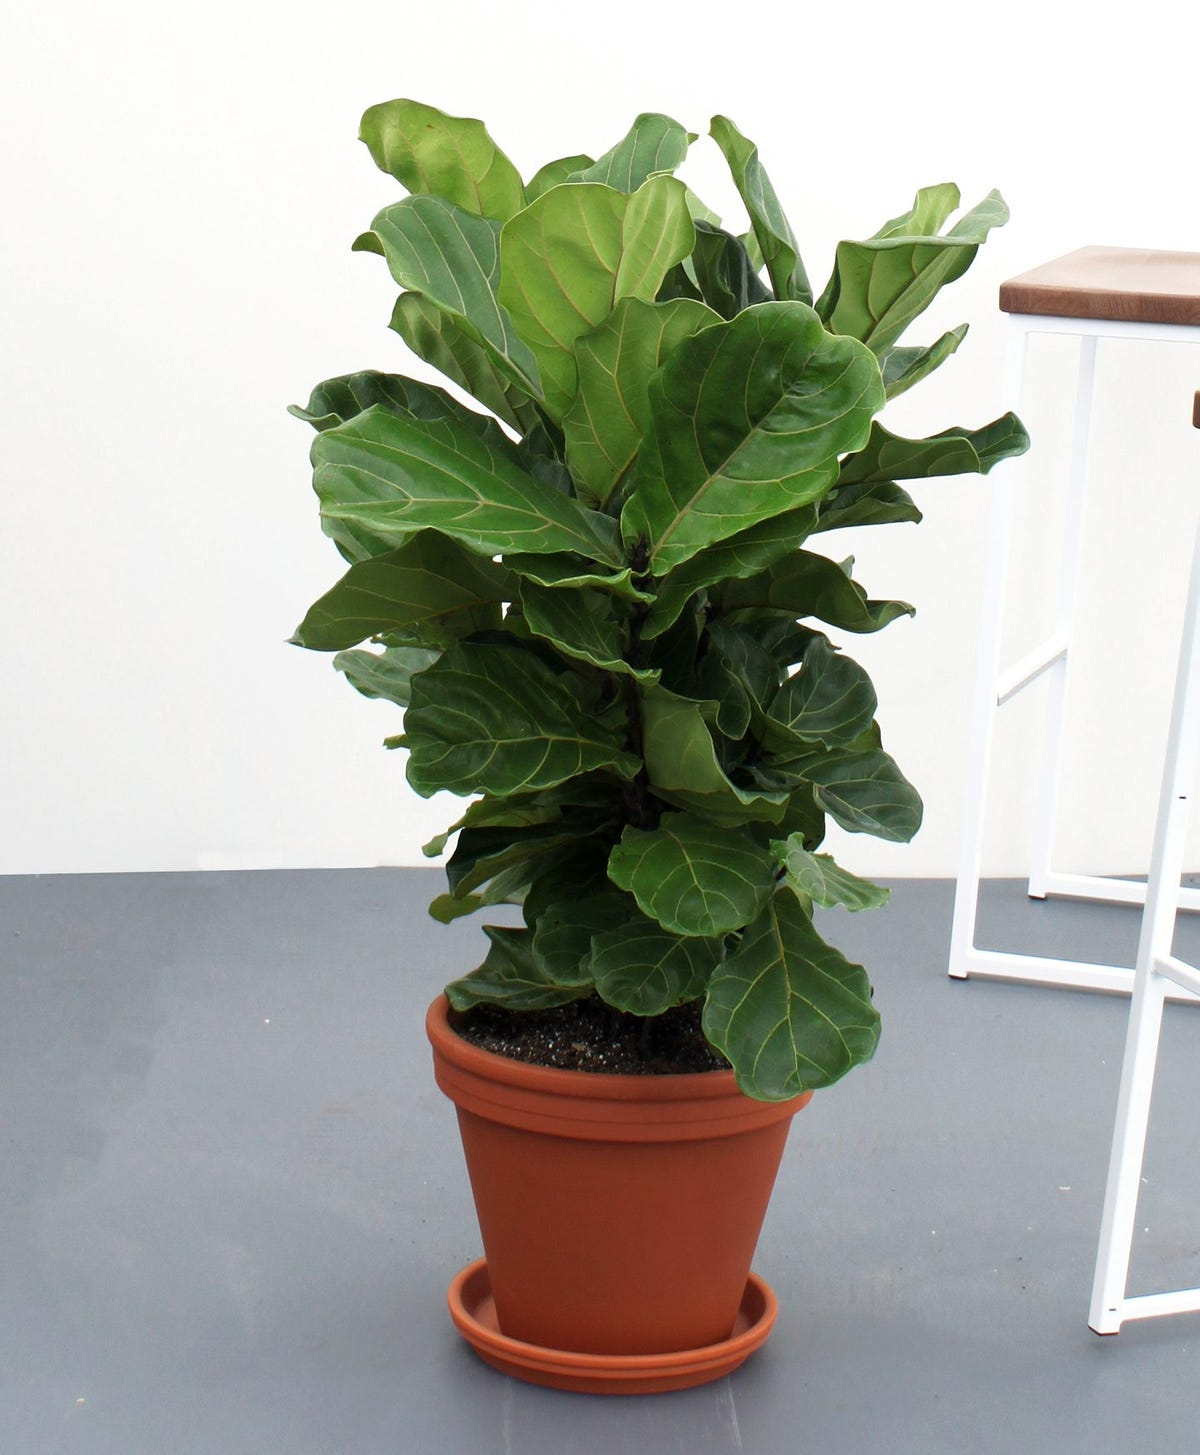 Buying Plants Online: Plant Stores To Order Houseplants